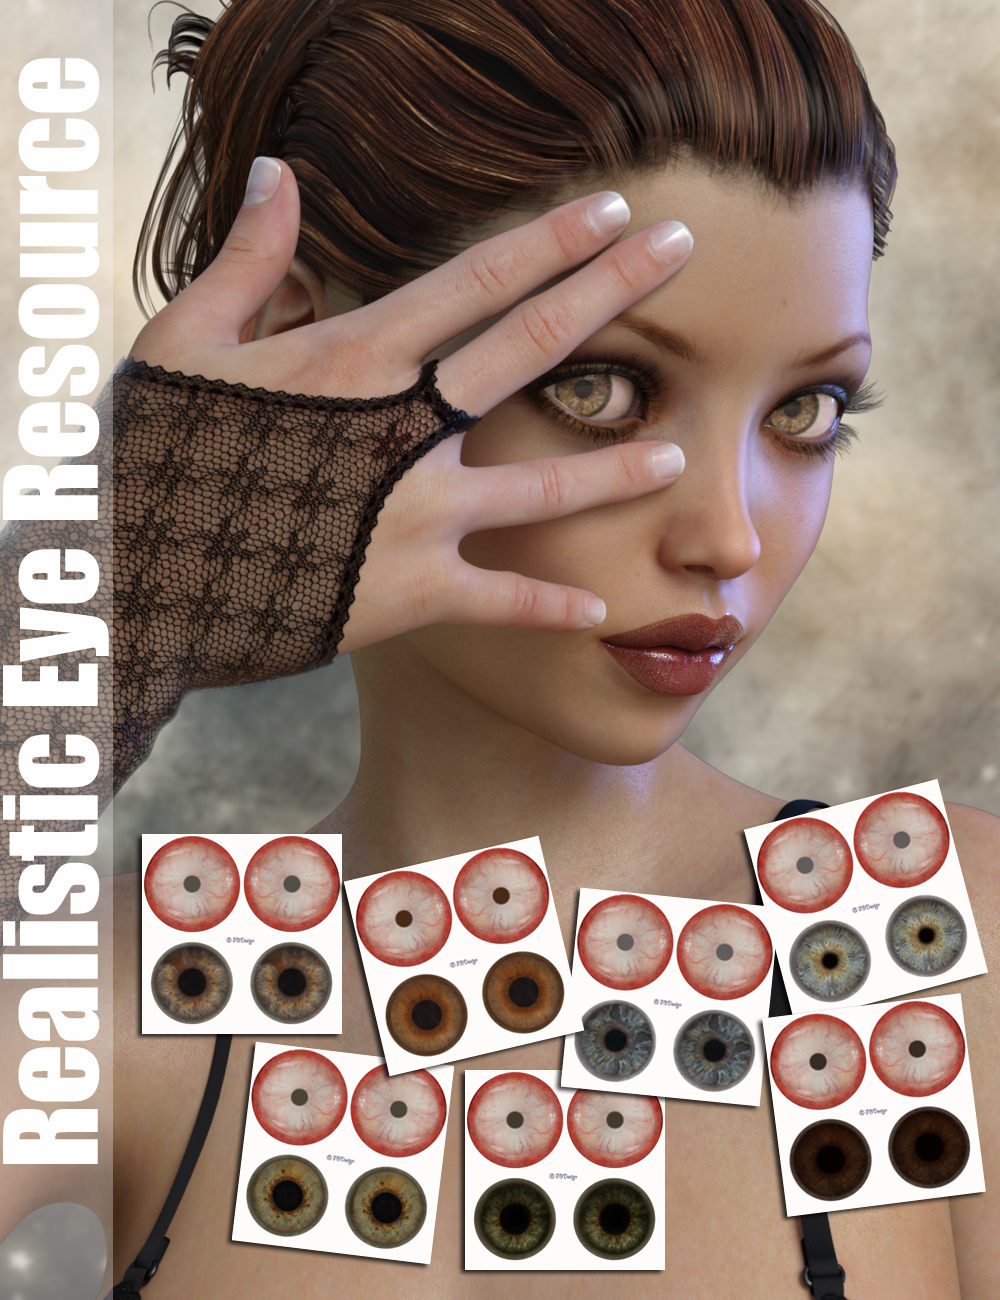 P3D Realistic Eye Resource for Genesis 3 Female(s) by: P3Design, 3D Models by Daz 3D